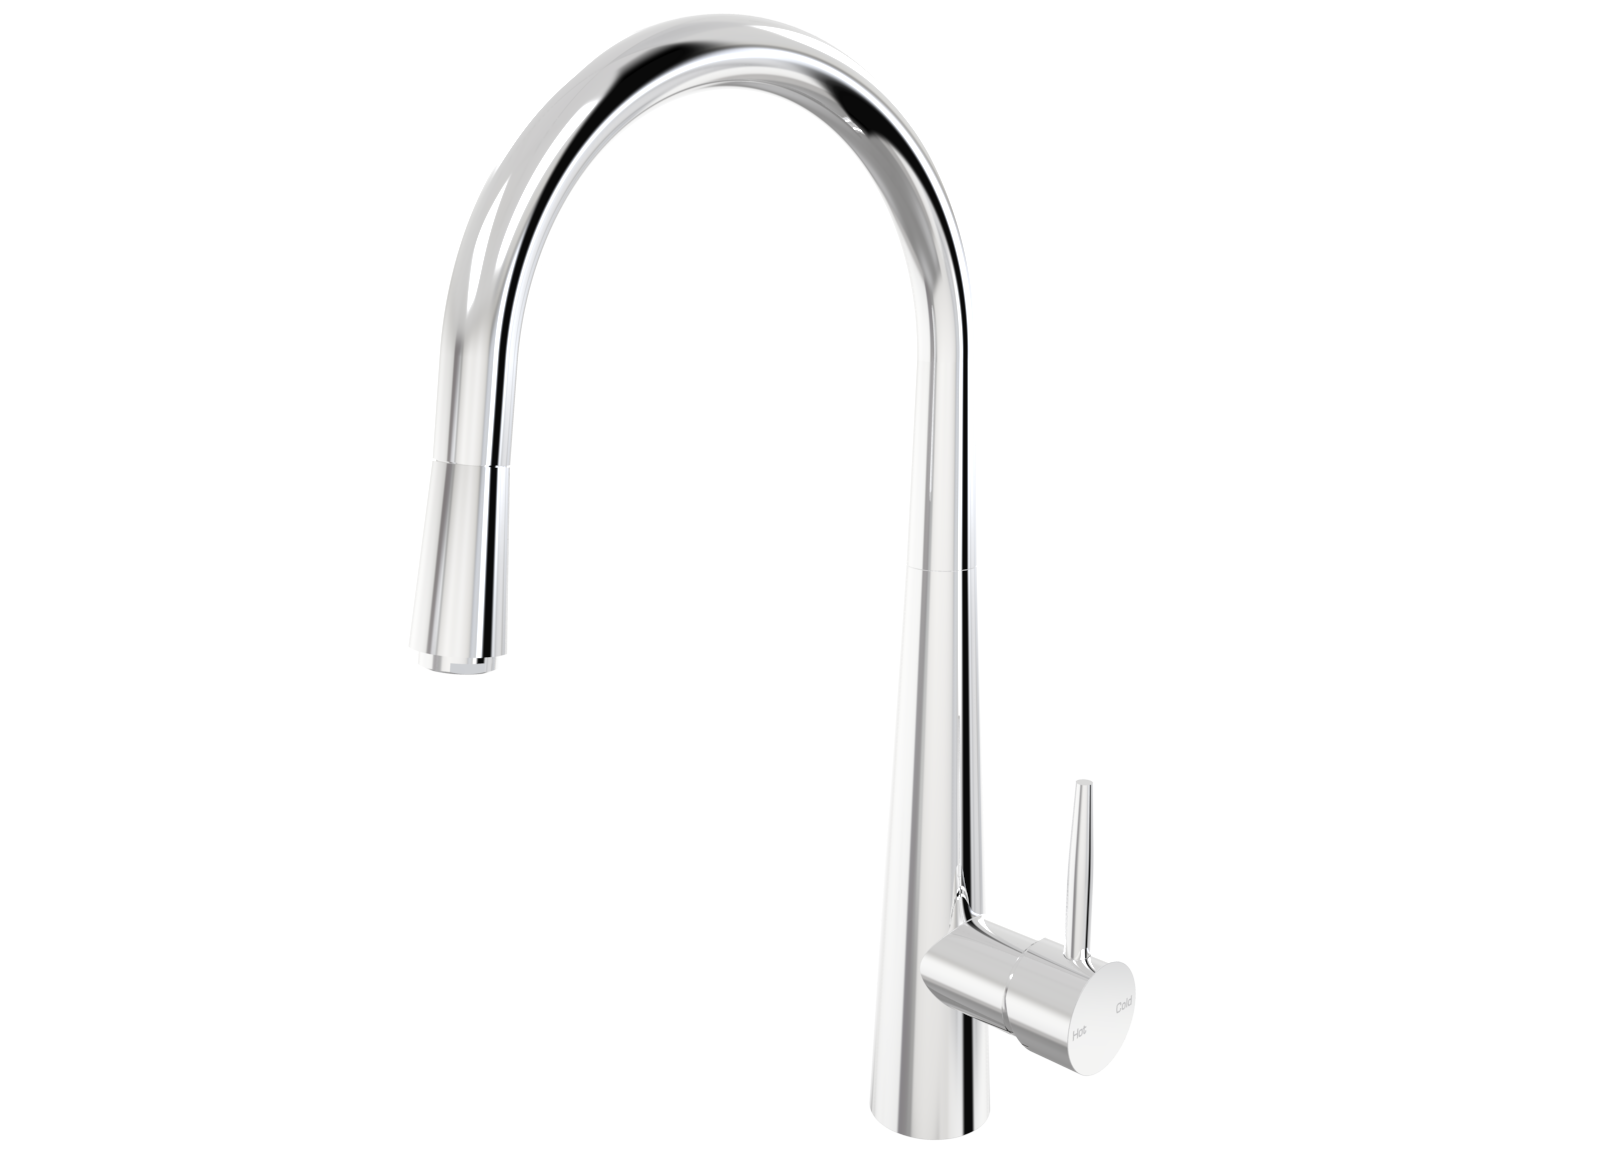 Par Taps Lugano Sink Pull-Out Mixer - Swivel